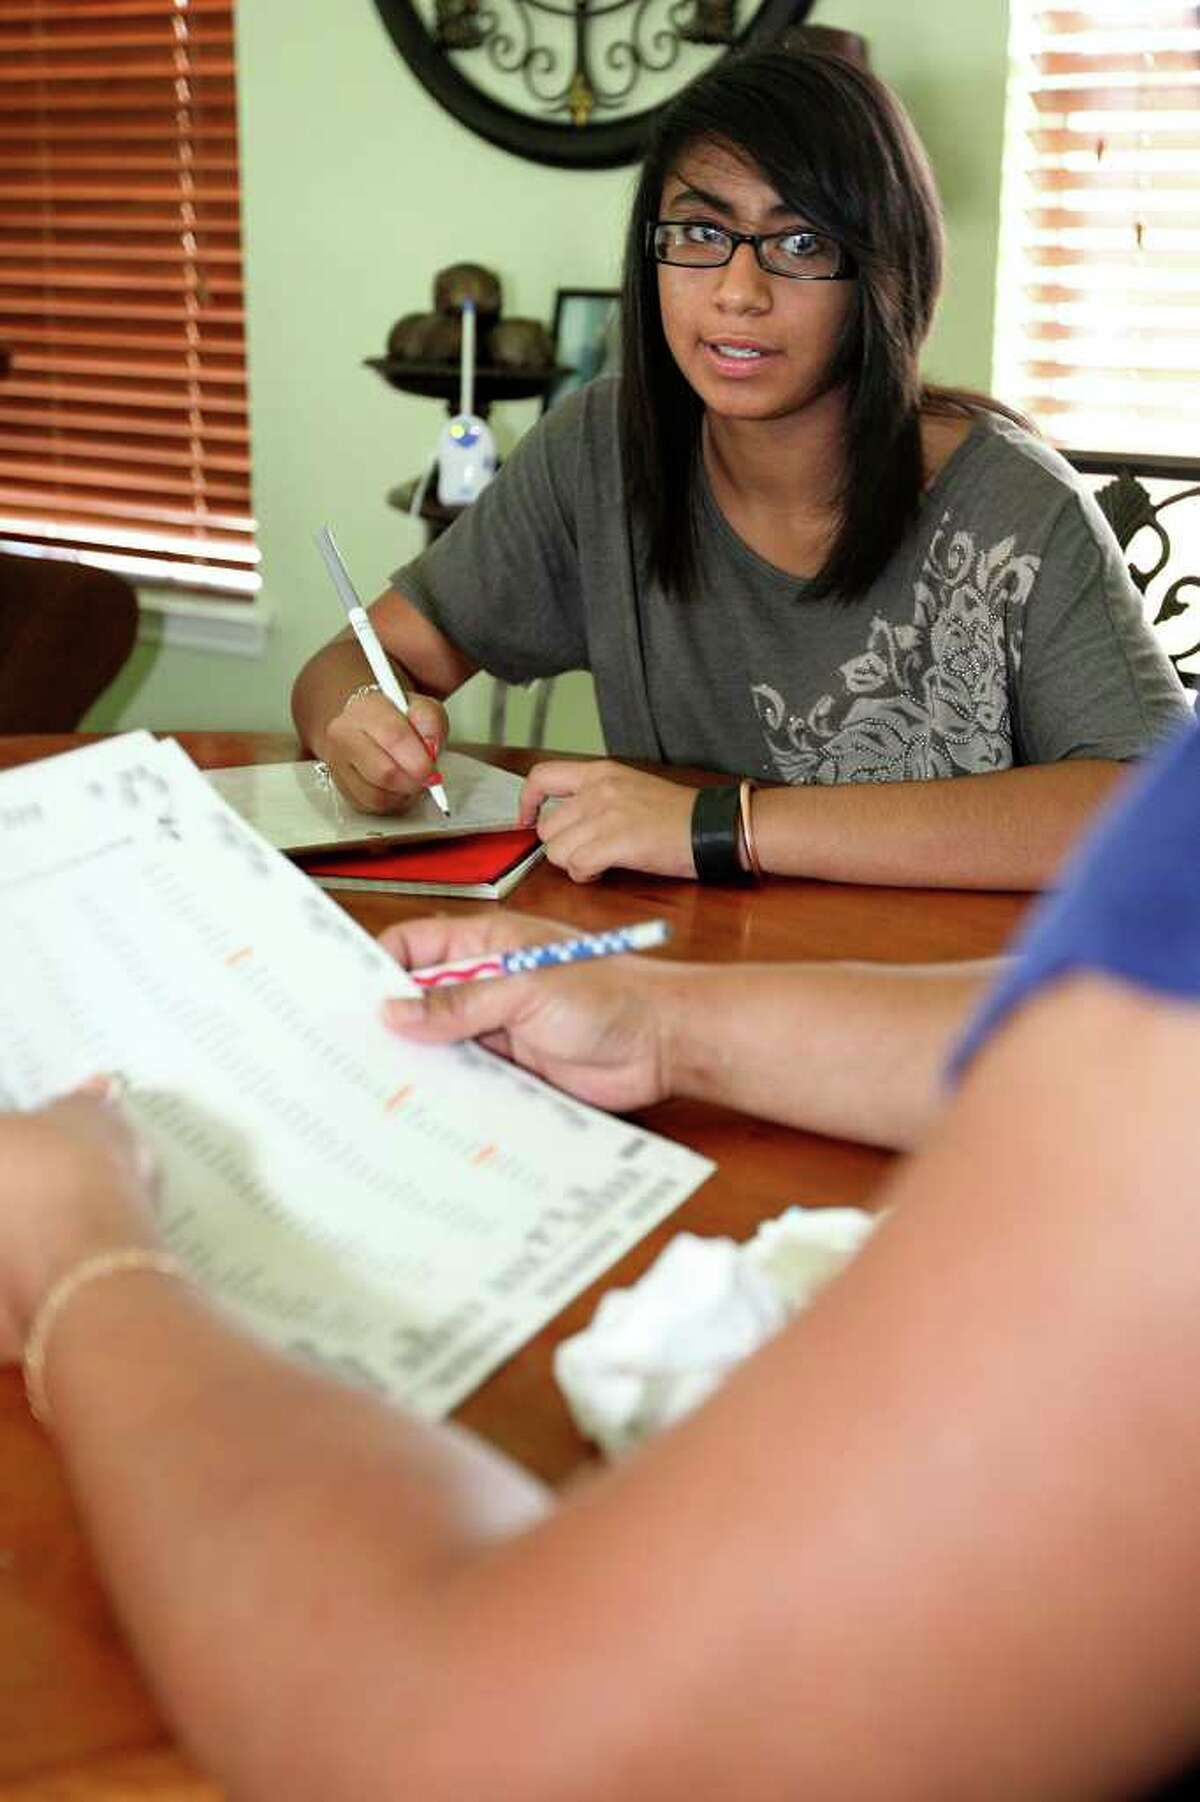 Linda Duann Rodriguez studies a spelling bee word list with her mother.